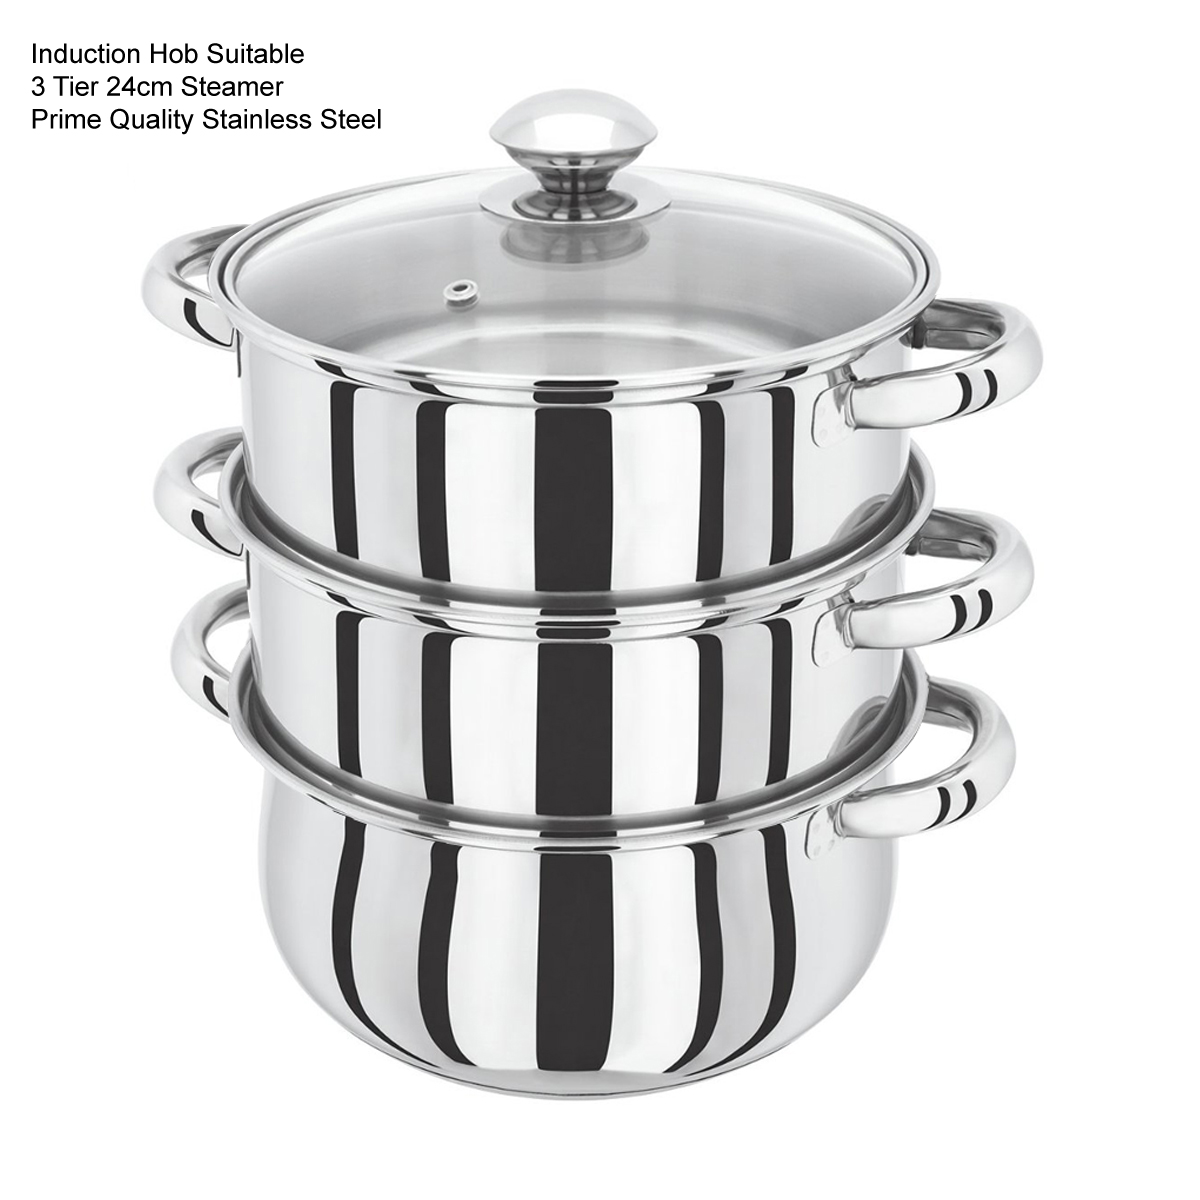 s s steel 3 and 4 tier induction hob steamer cookware pot. Black Bedroom Furniture Sets. Home Design Ideas